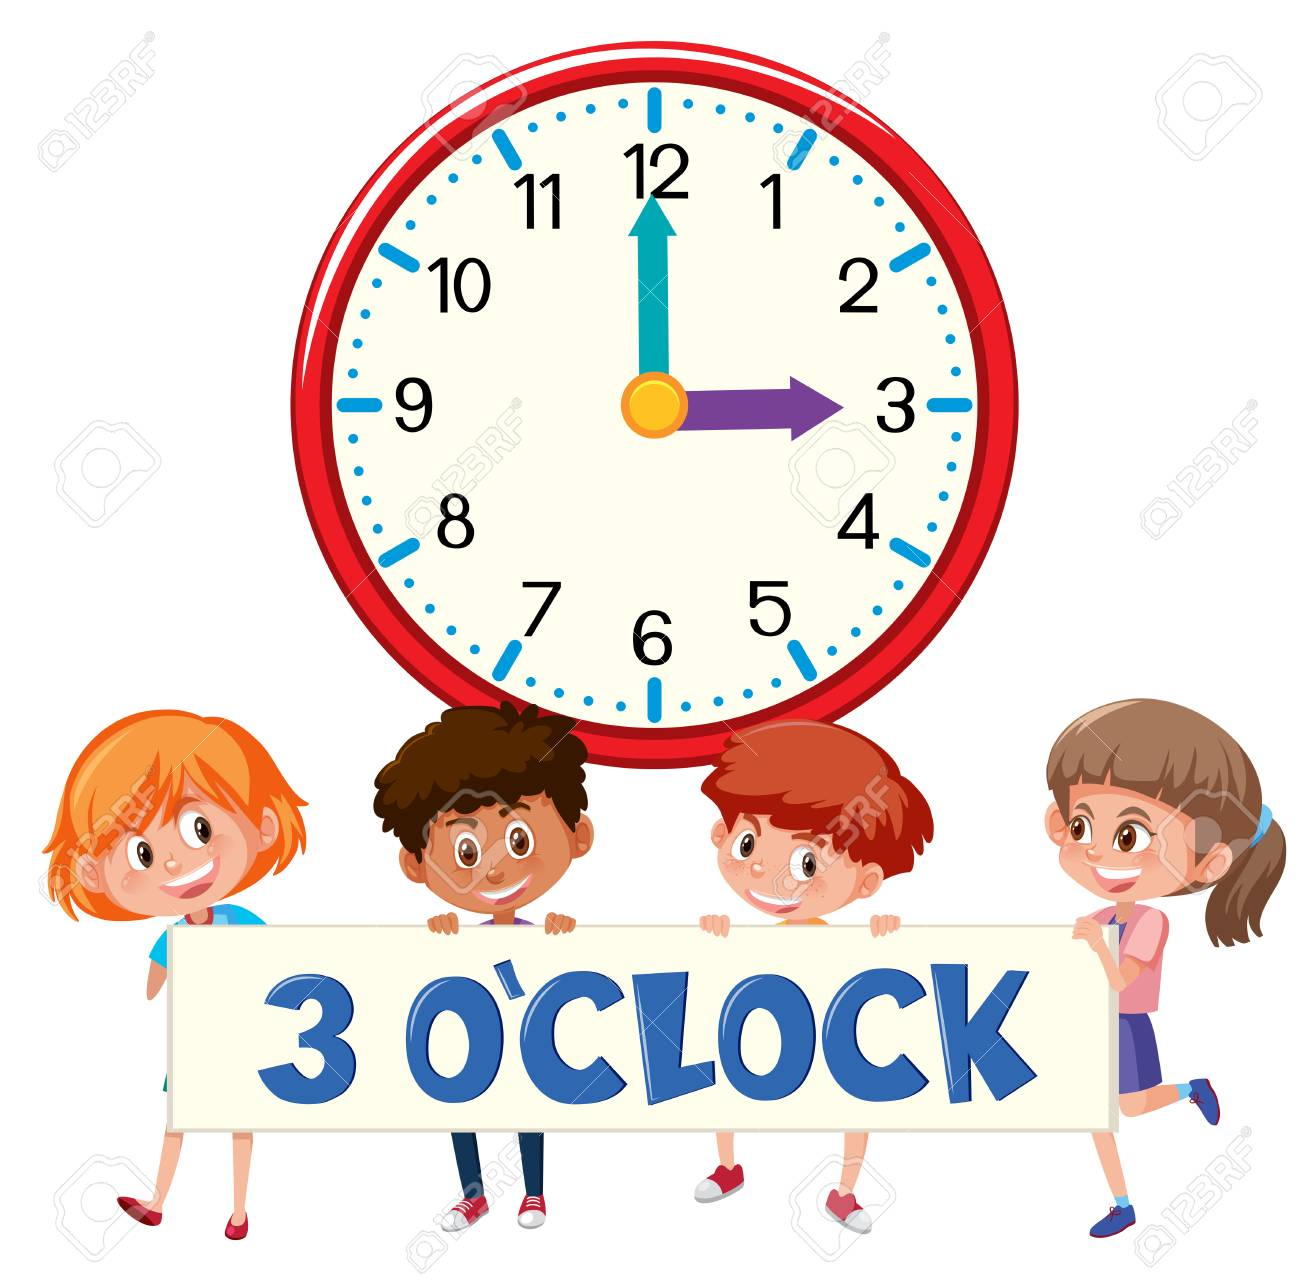 3 o'clock and students illustration.